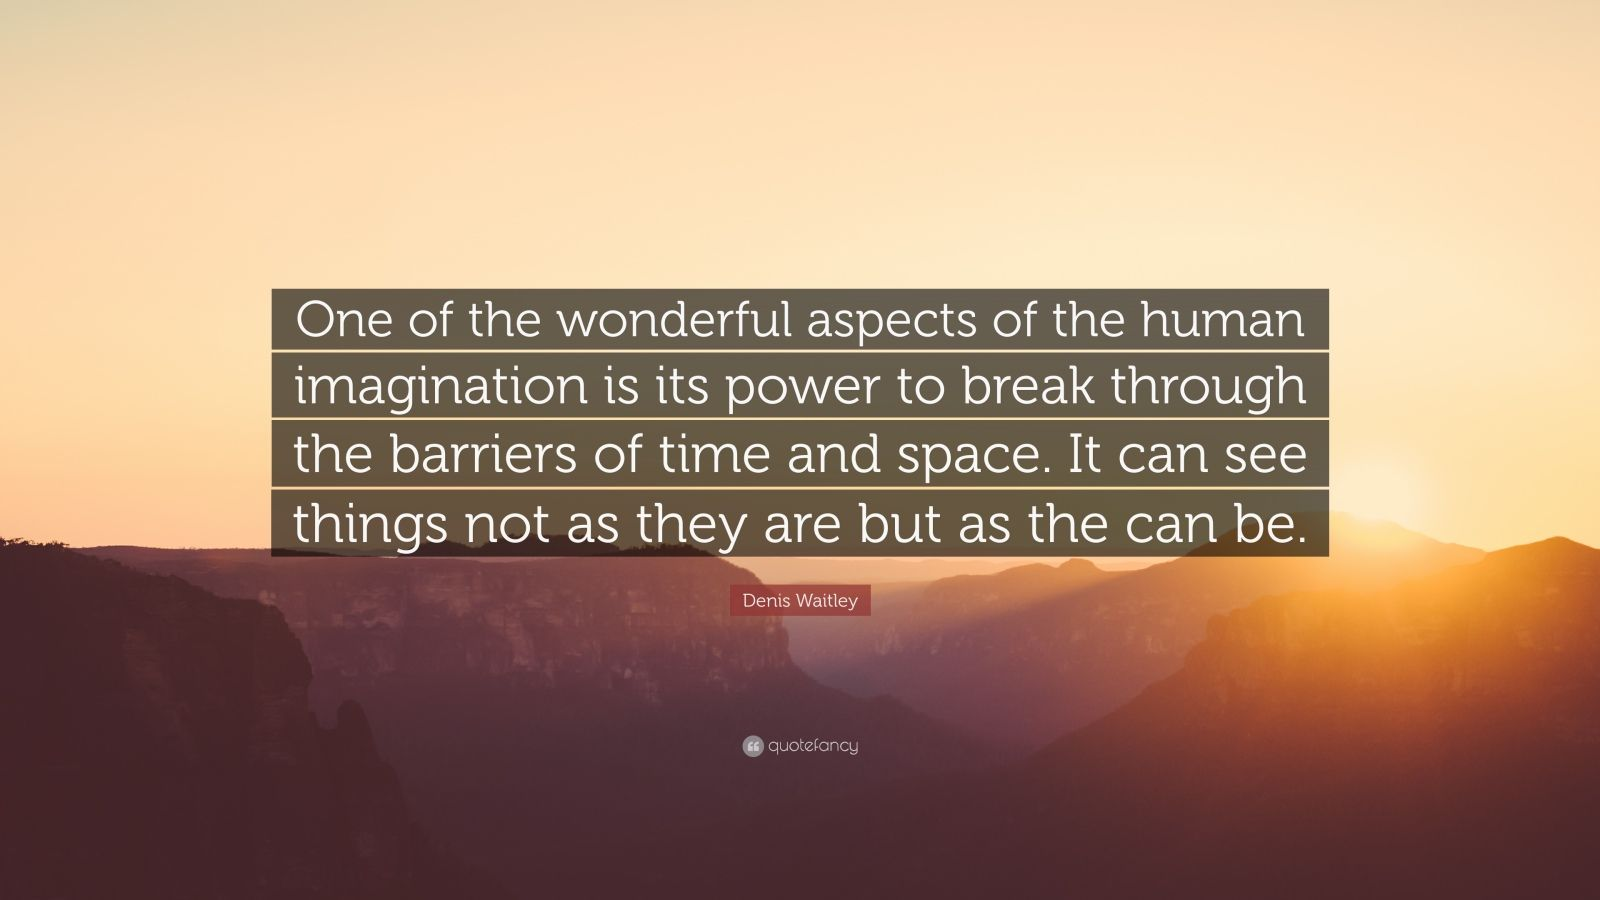 """Denis Waitley Quote: """"One of the wonderful aspects of the human imagination is its power to break through the barriers of time and space. It can see things not as they are but as the can be."""""""